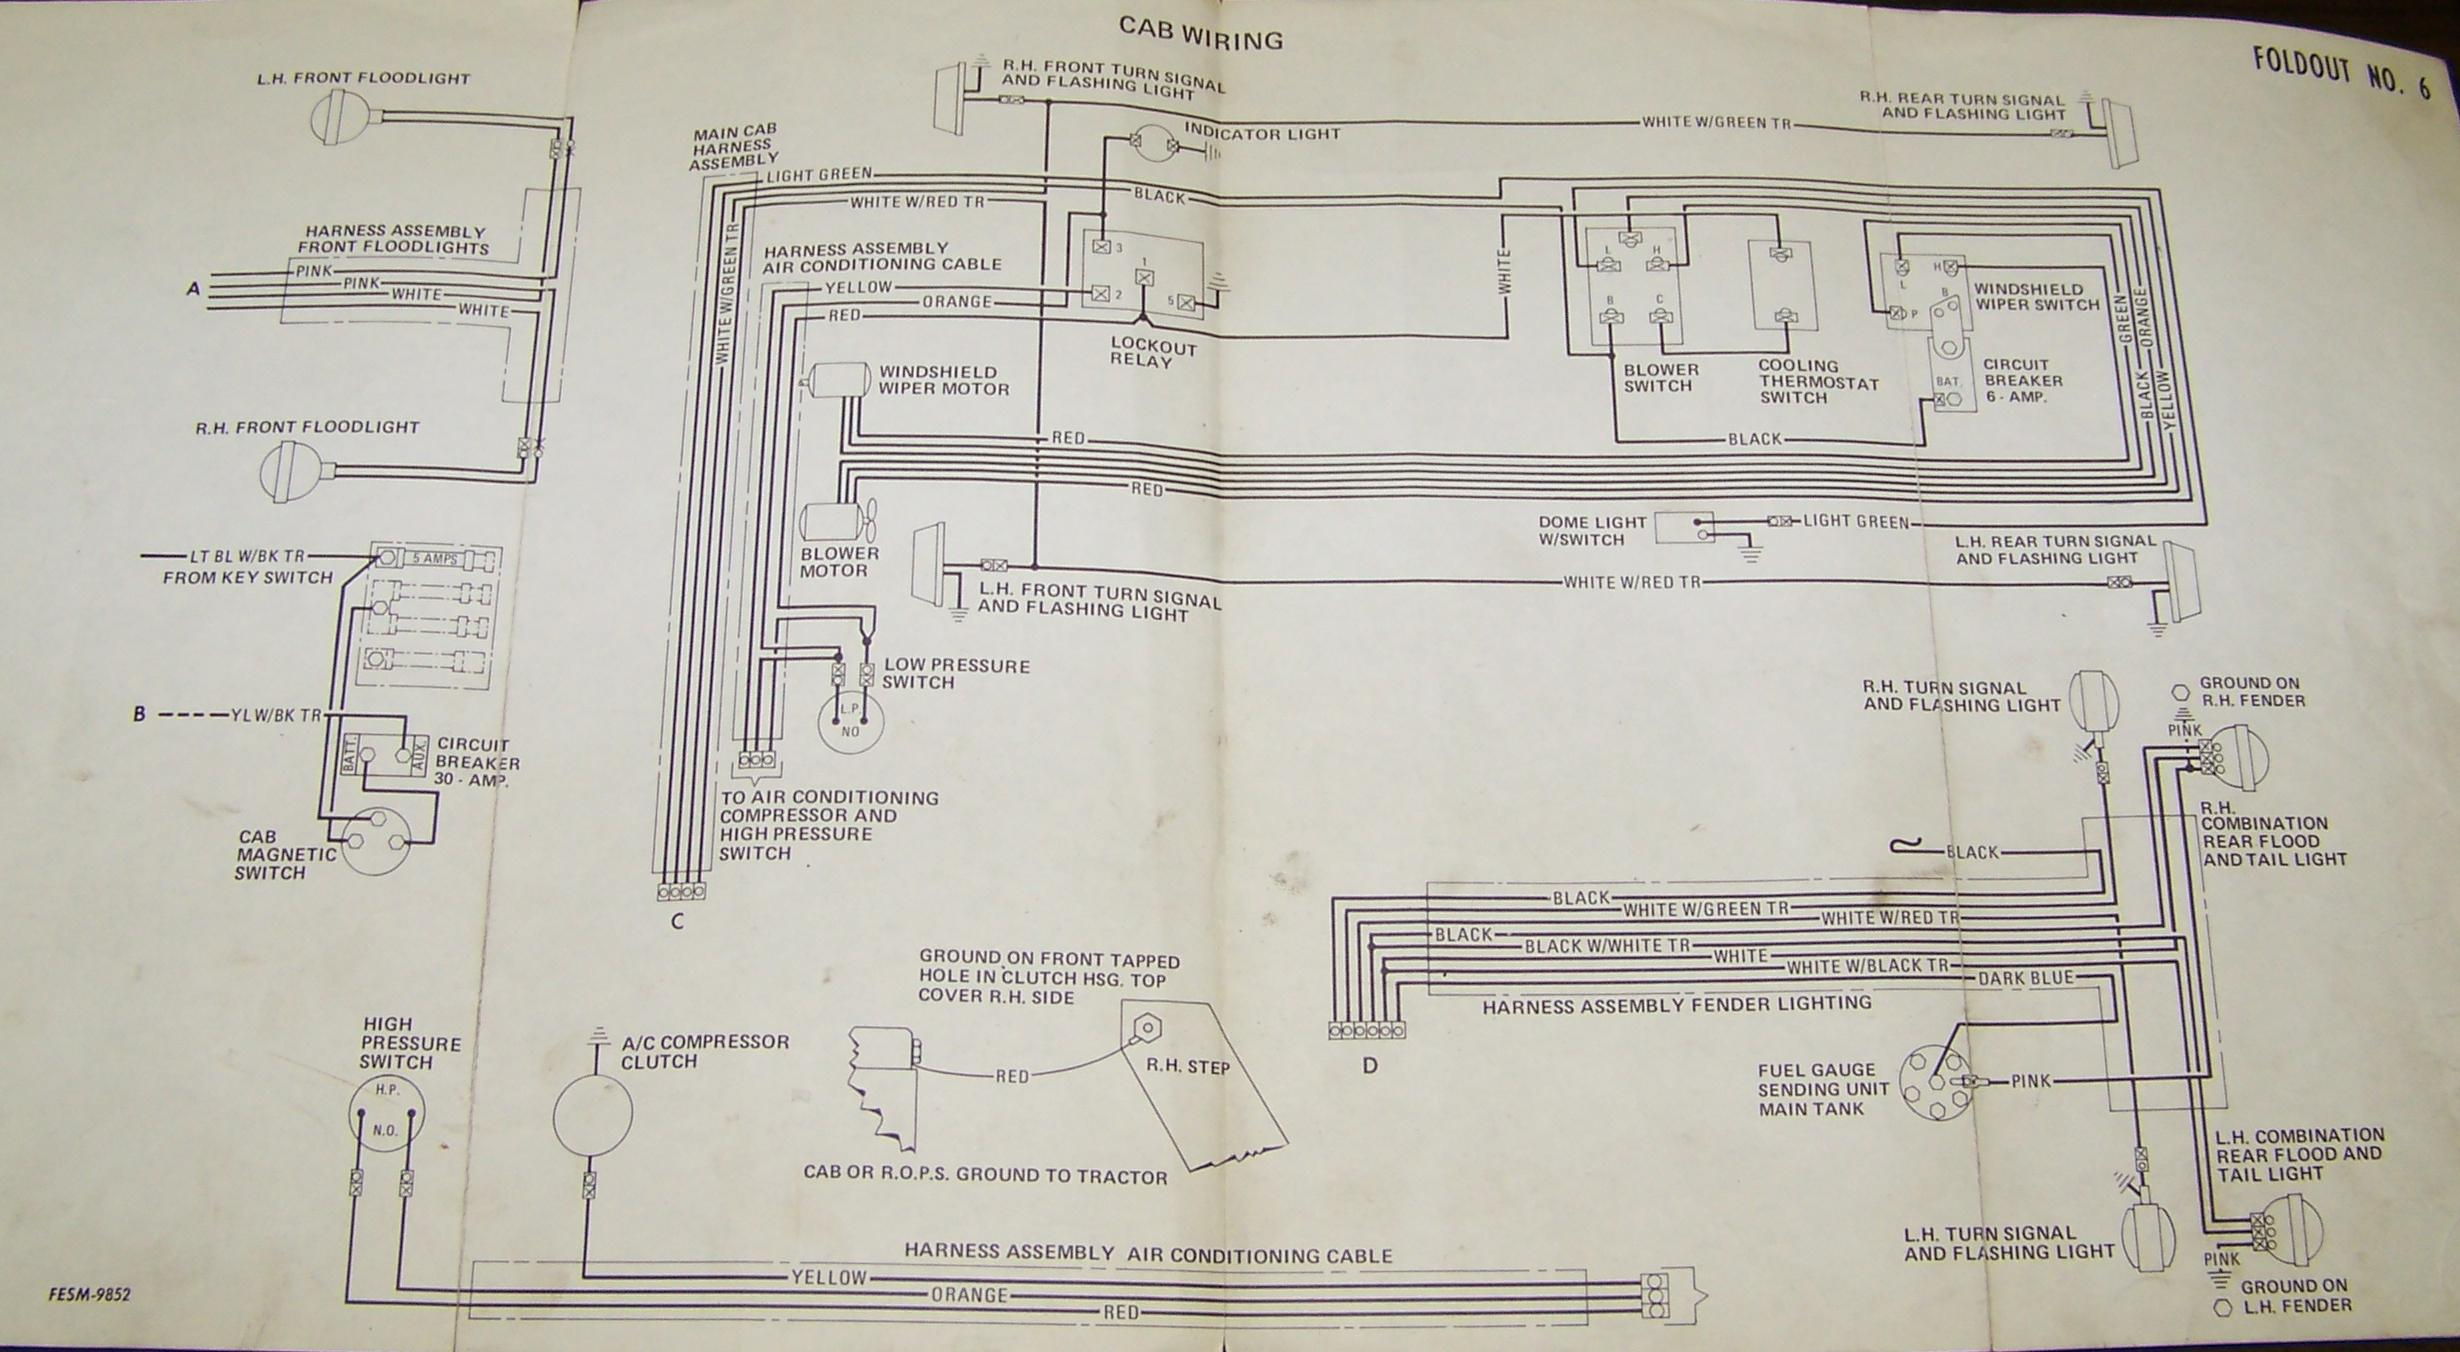 carter gruenewald co inc ih farmall tractor electrical wiring rh cngco com Farmall 140 Parts Diagram Farmall Super a Tractor Alternator Conversion Diagram